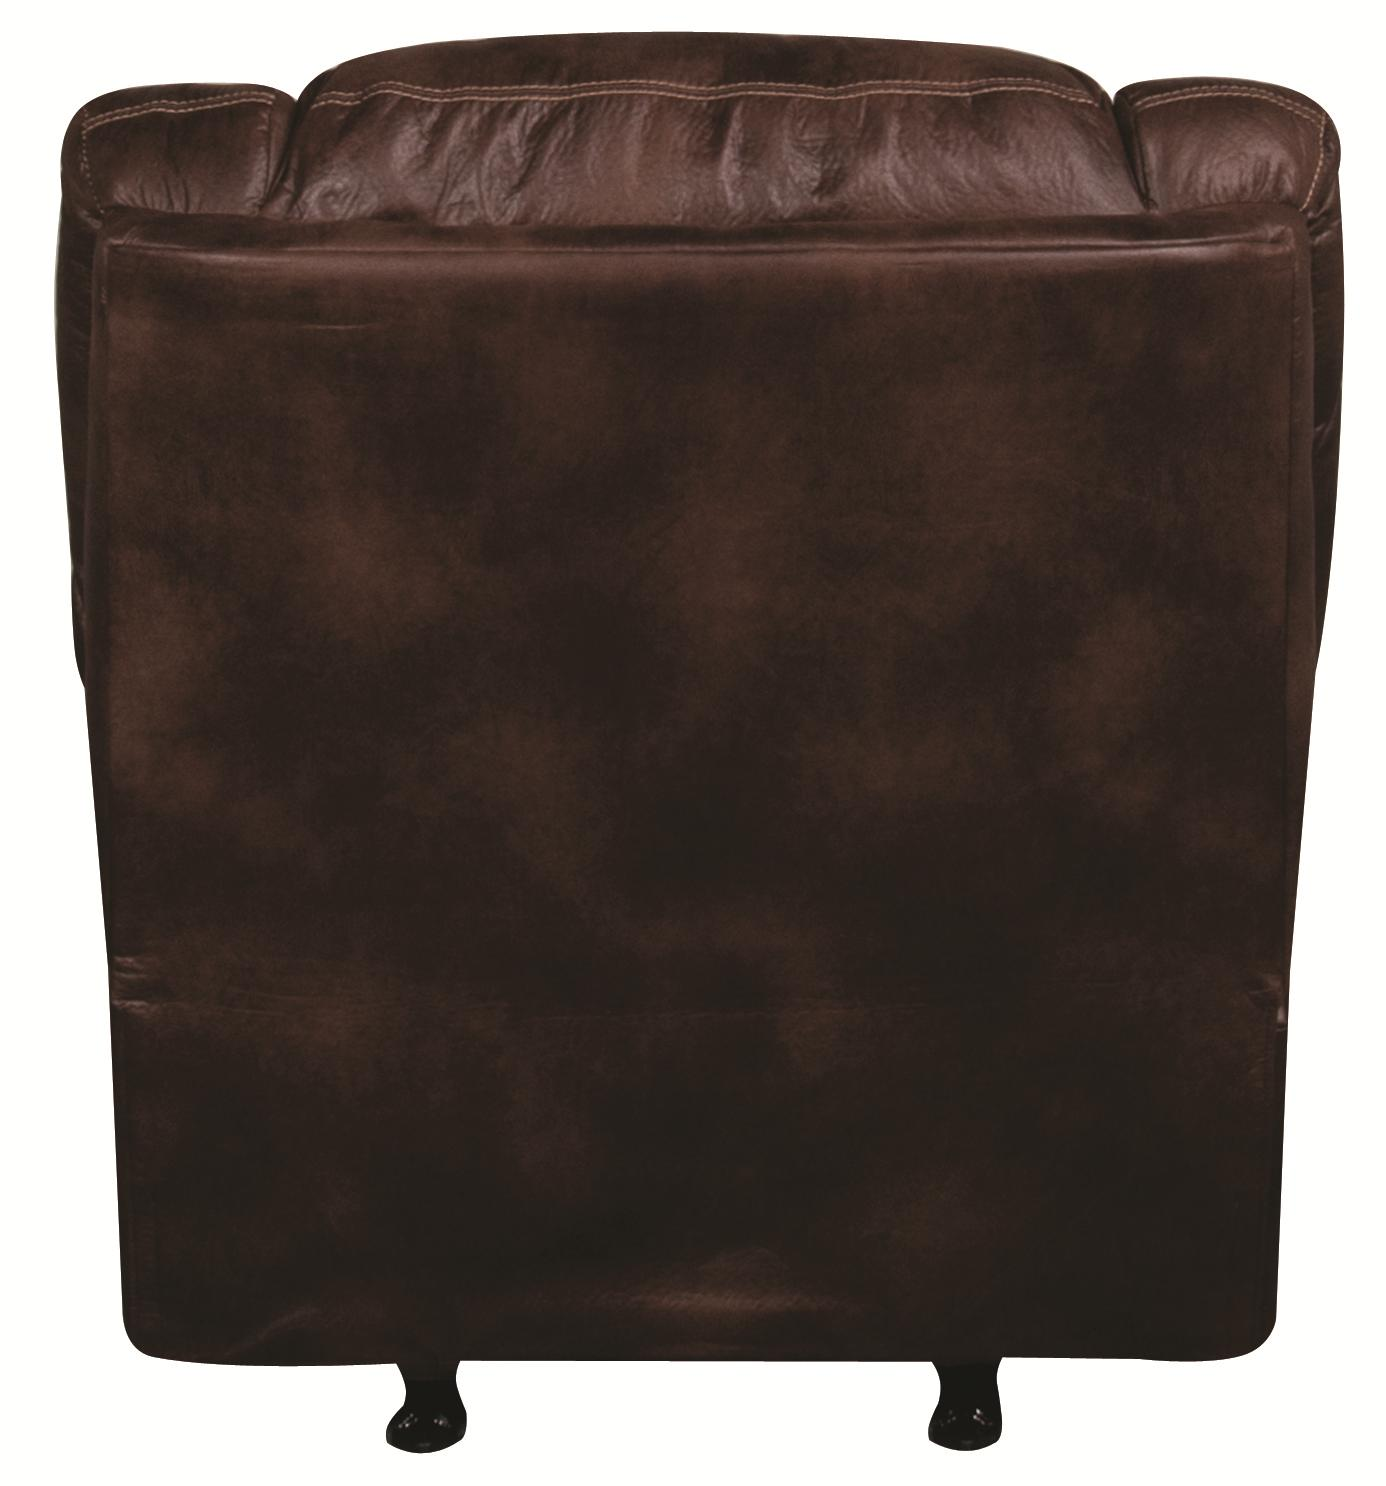 Elijah power rocker recliner morris home three way recliners Morris home furniture hours